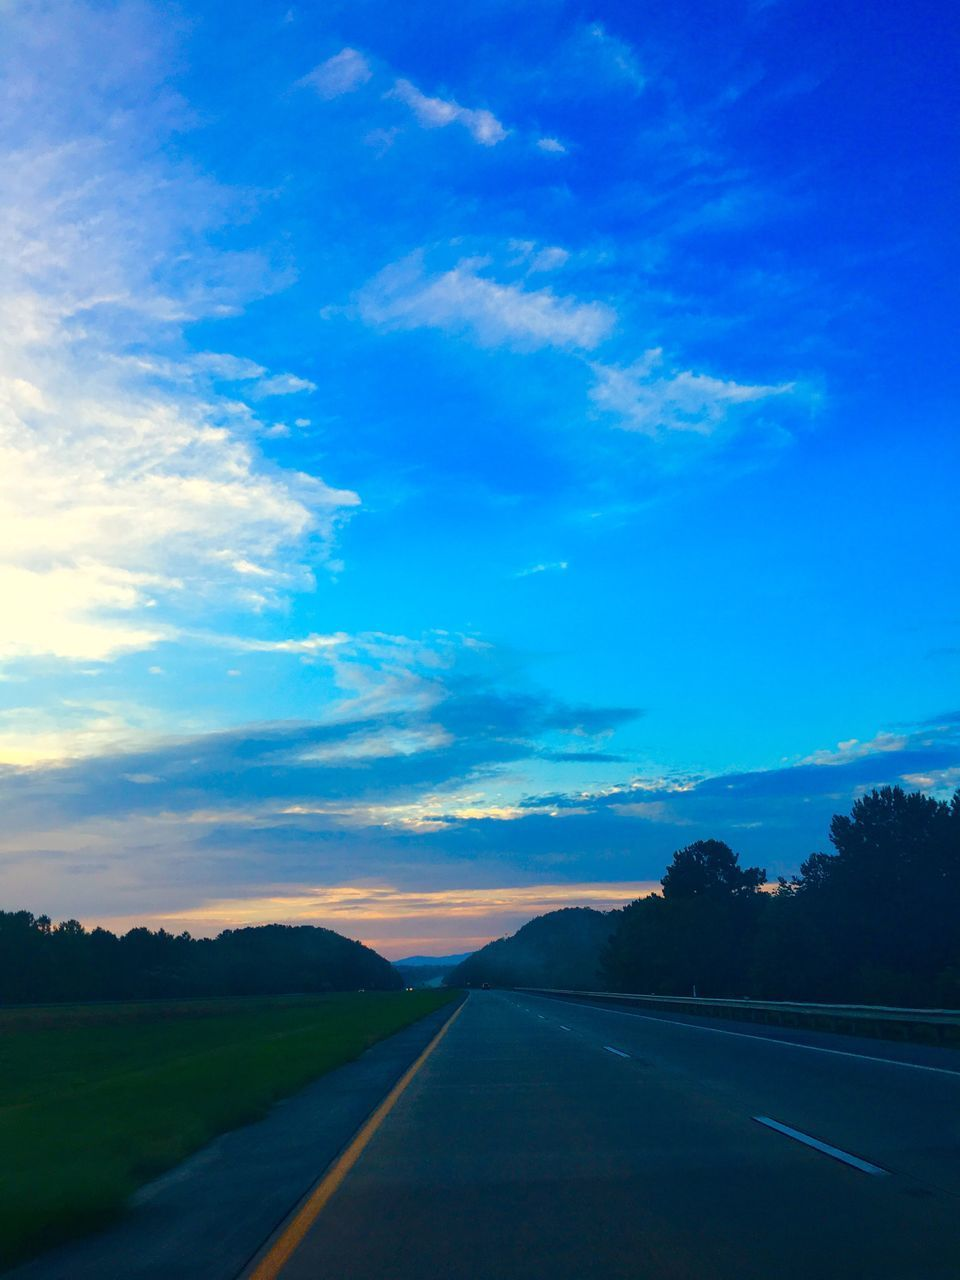 road, the way forward, sky, transportation, road marking, blue, tranquil scene, landscape, nature, scenics, tranquility, outdoors, dividing line, no people, beauty in nature, sunset, day, tree